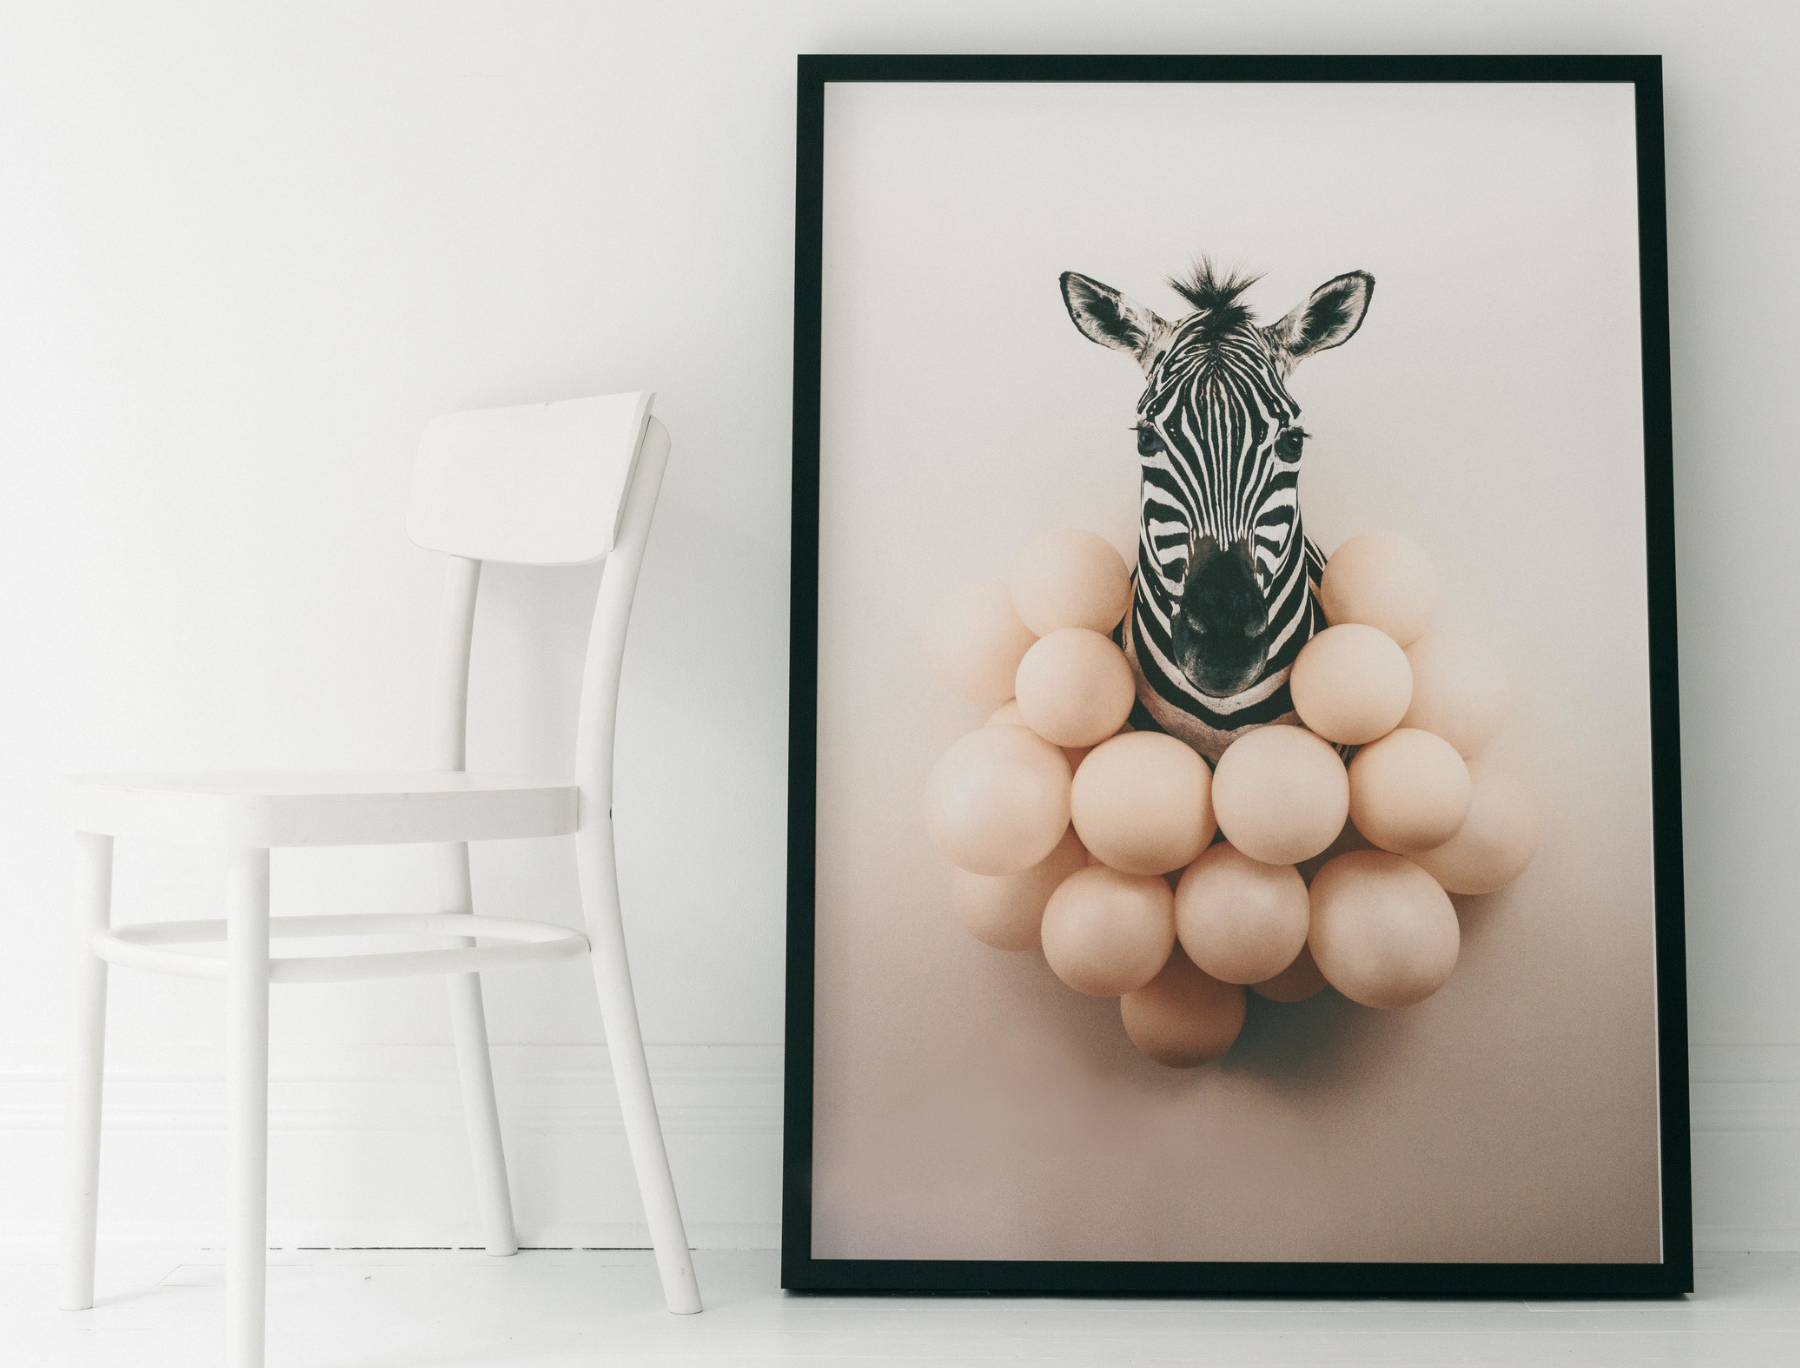 """I've already decided the theme of my second series and animals will be featured. I have an amazing photograph of Zebras I'm excited to play around with. It seems Zebras are a fun subject matter for several artists as I see them everywhere now. Artist Anna Church has done this piece """"Party Animal"""" above and has several other stunning prints on her website. You should check her out,she is currently living in Toronto. http://annachurchart.com"""